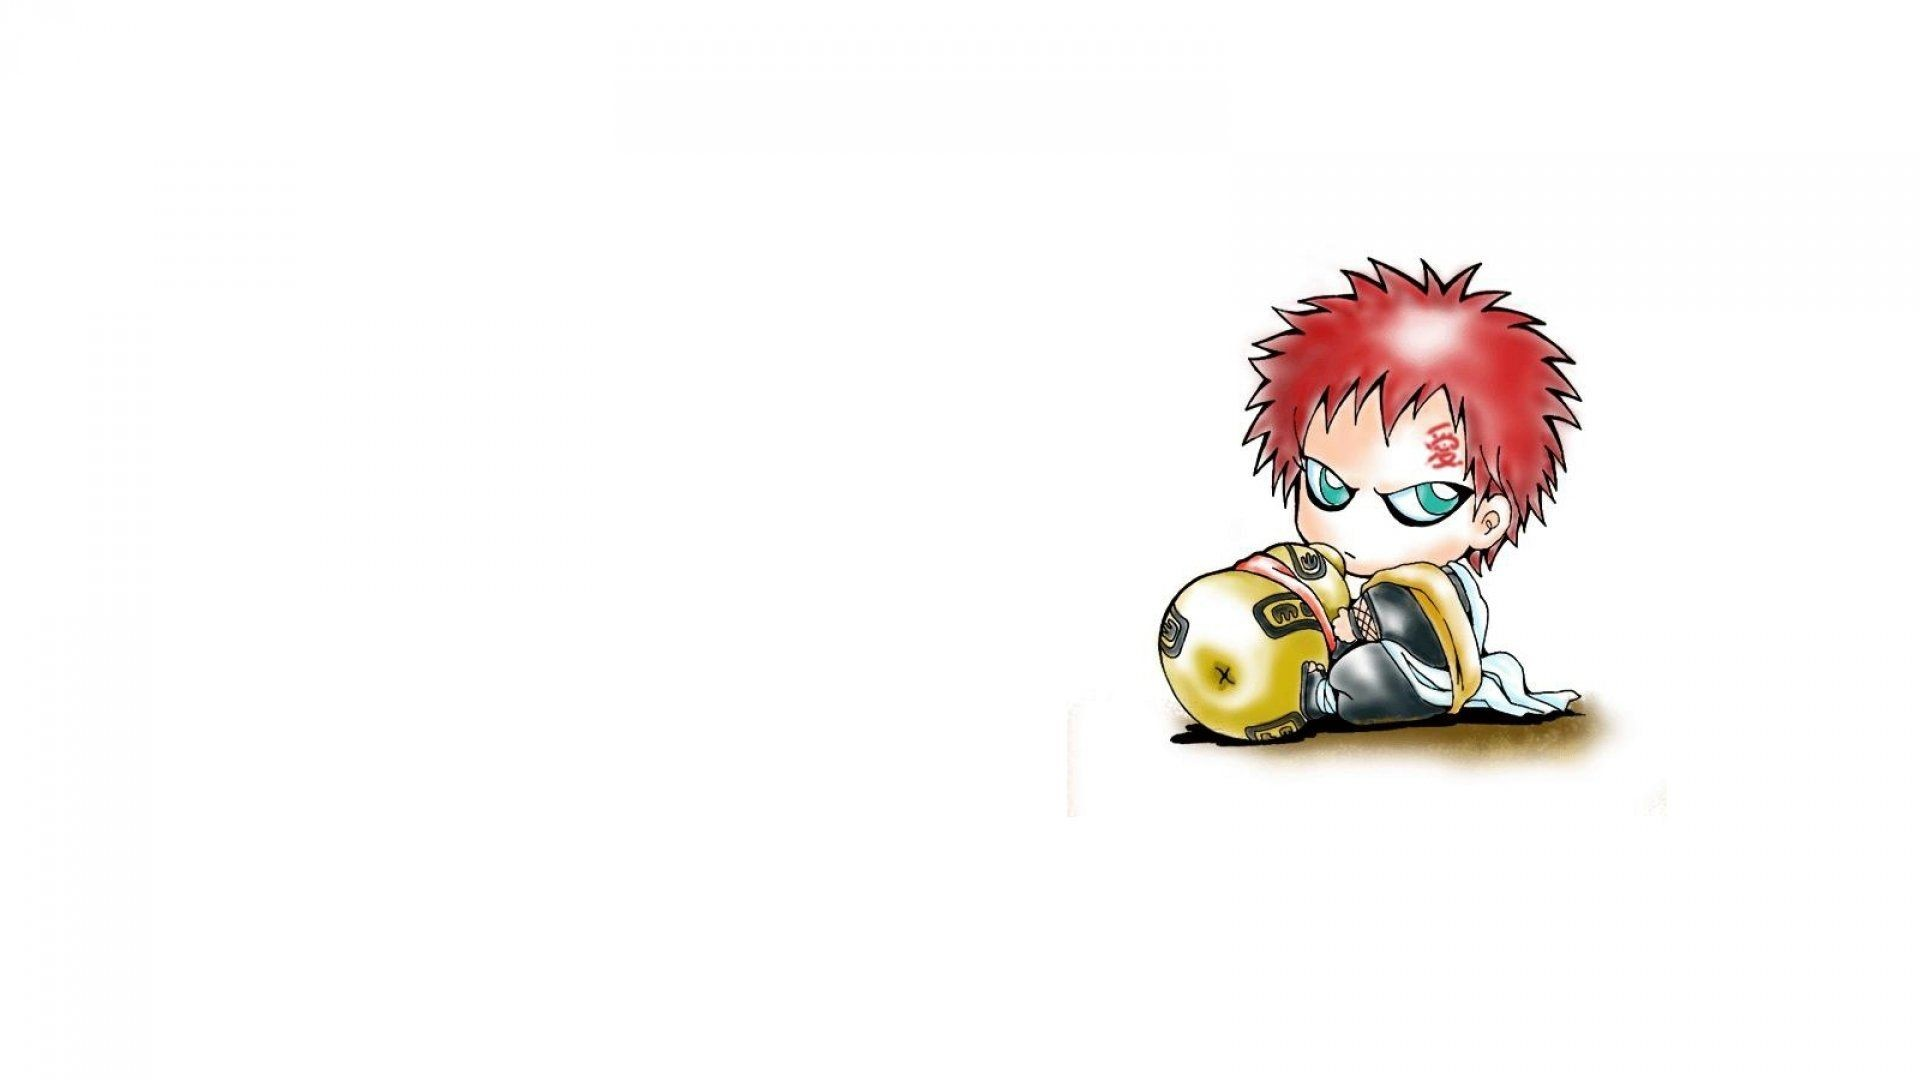 Res: 1920x1080, Vocaloid chibi wallpaper vocaloid ^^ Pinterest Chibi 1920×1080 Anime Chibi  Wallpapers (46